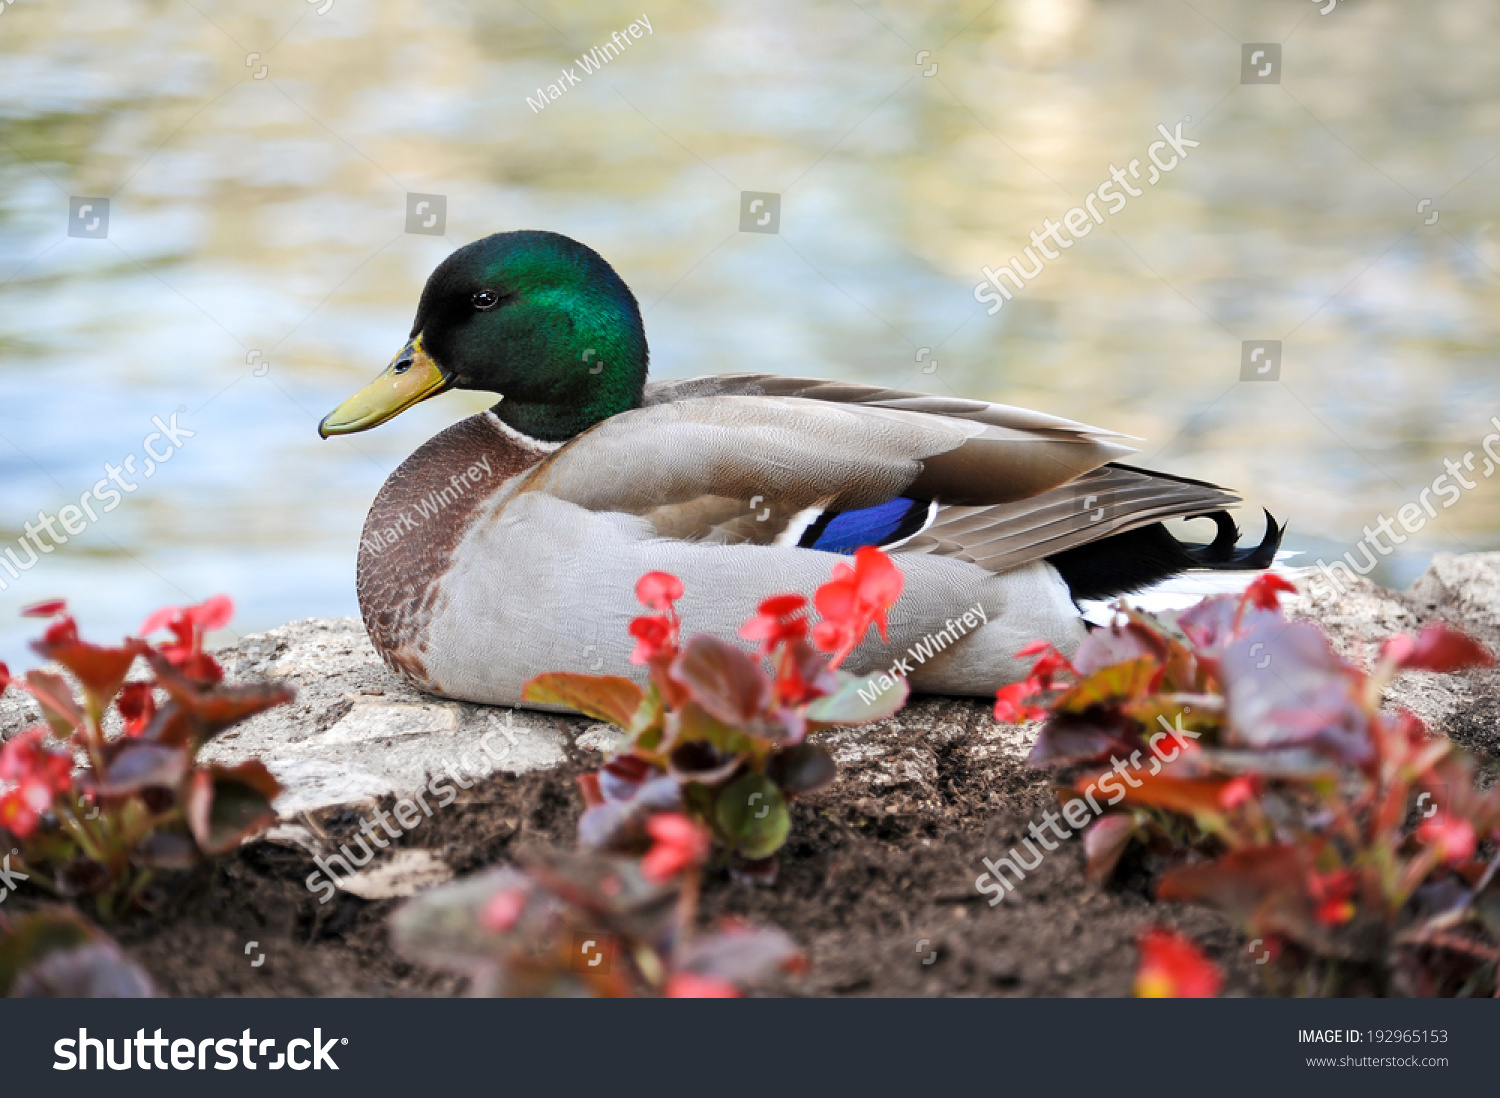 Mallard Duck Standing on Flower Bed Wall at the River